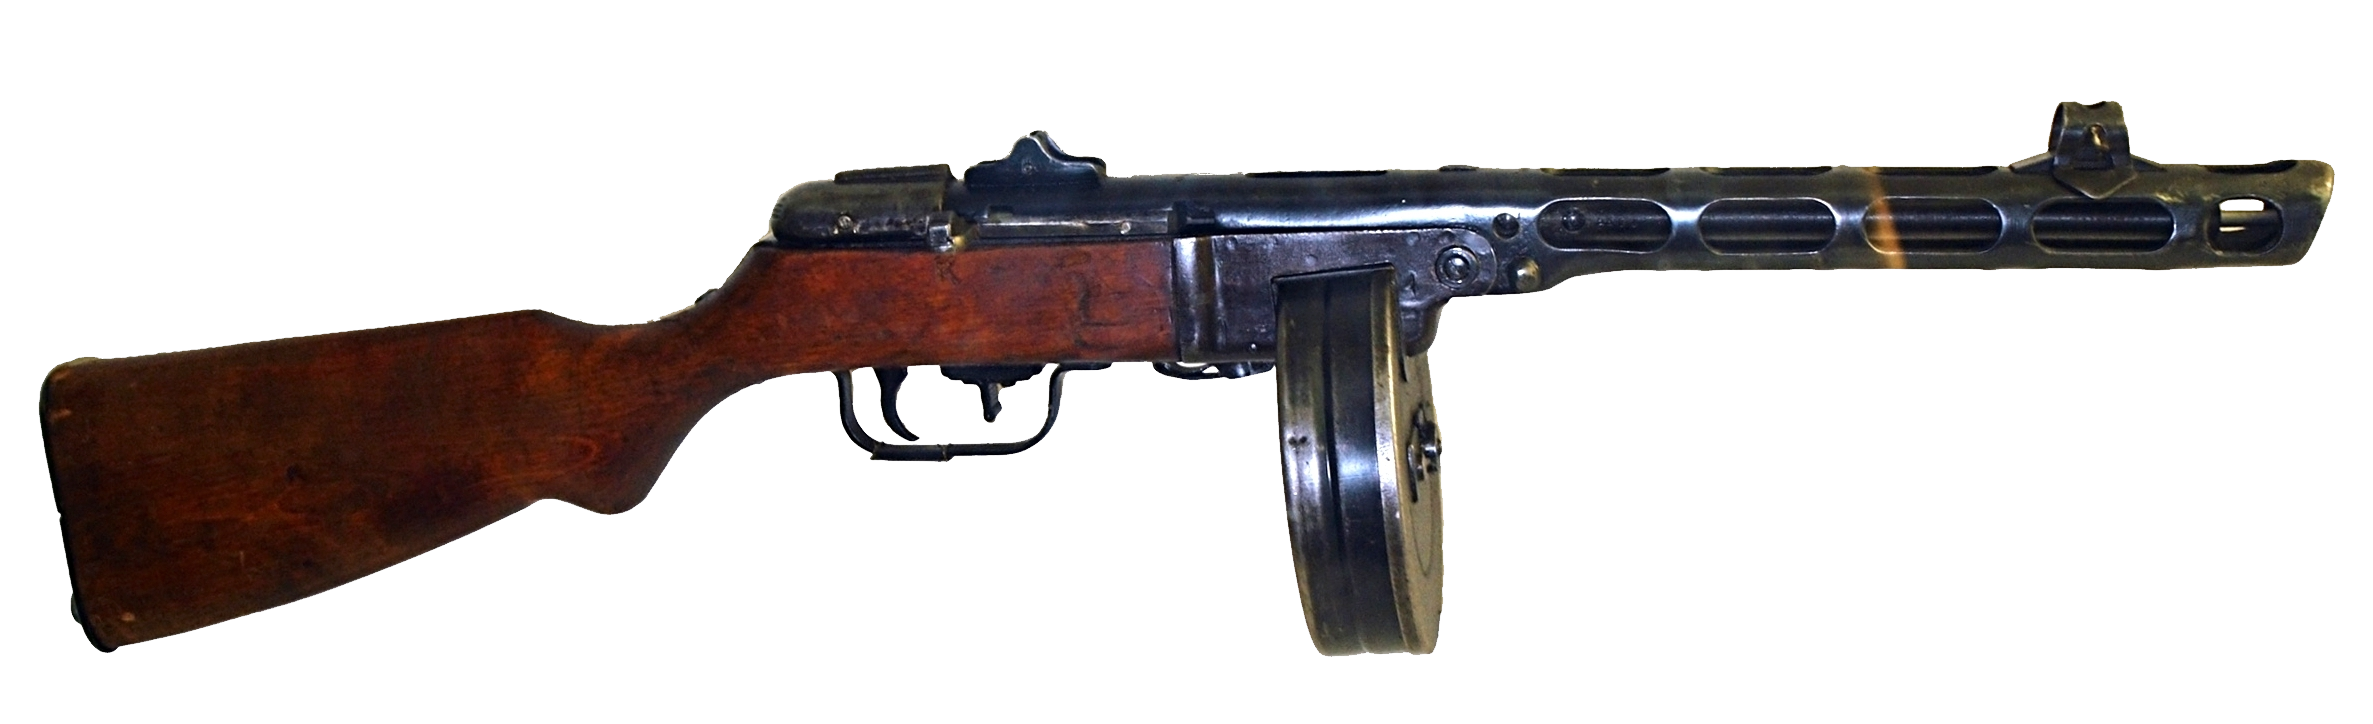 PPSh-41 PNG